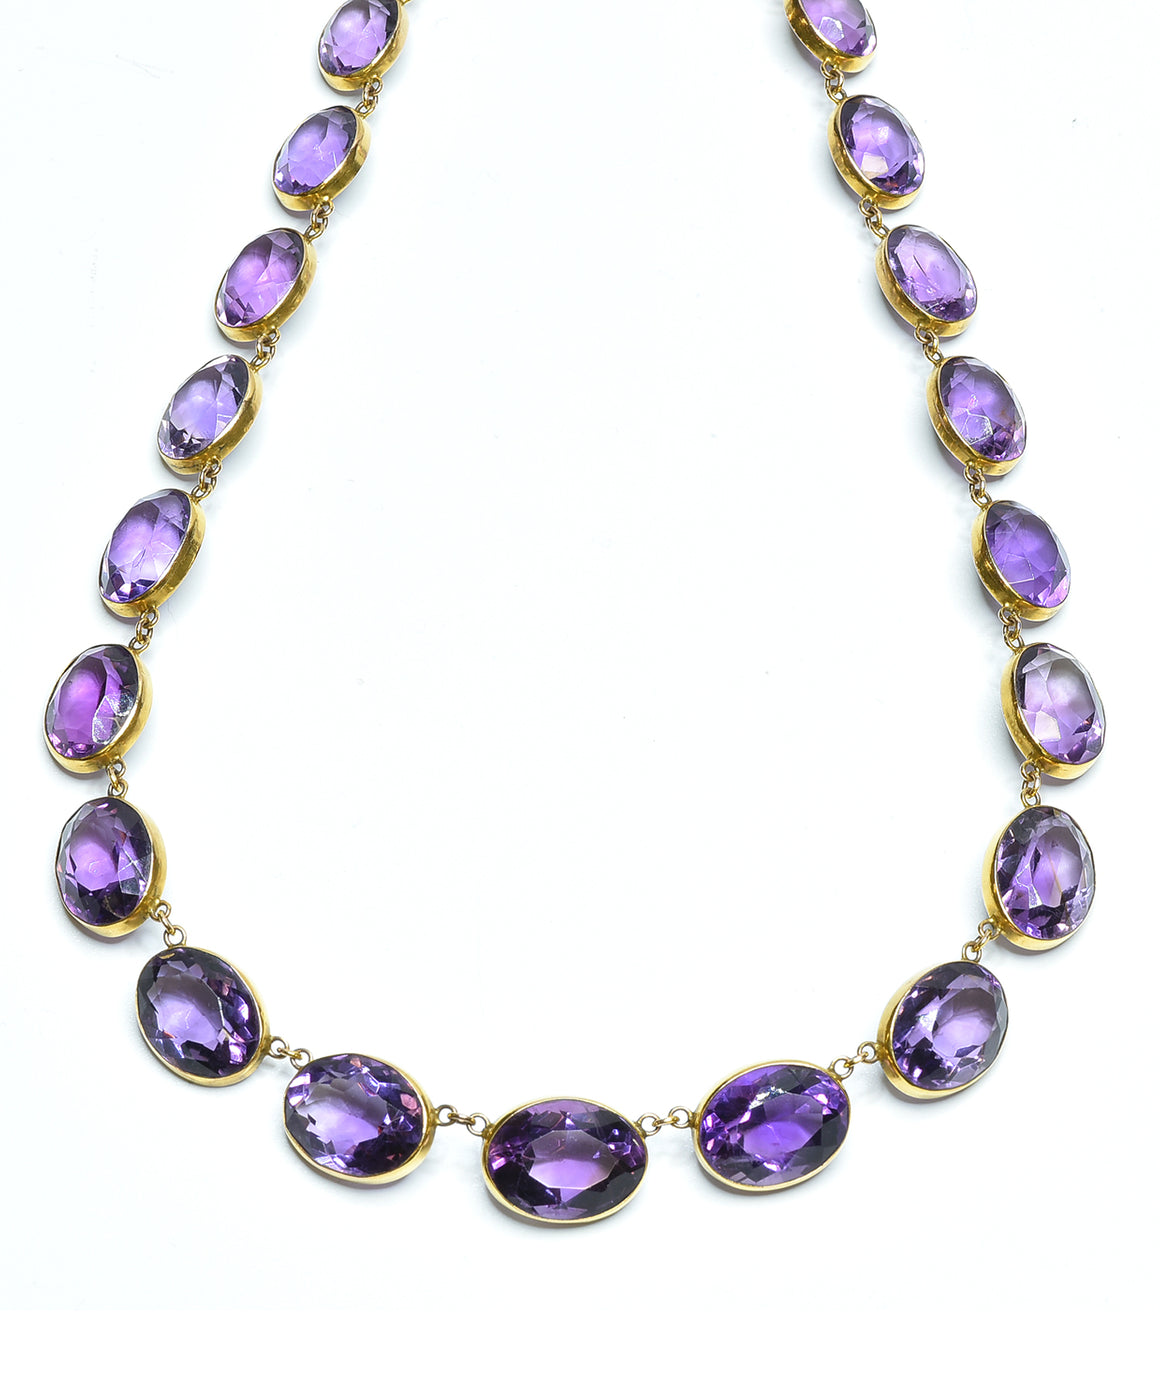 Amethyst Collet Necklace - Lesley Ann Jewels